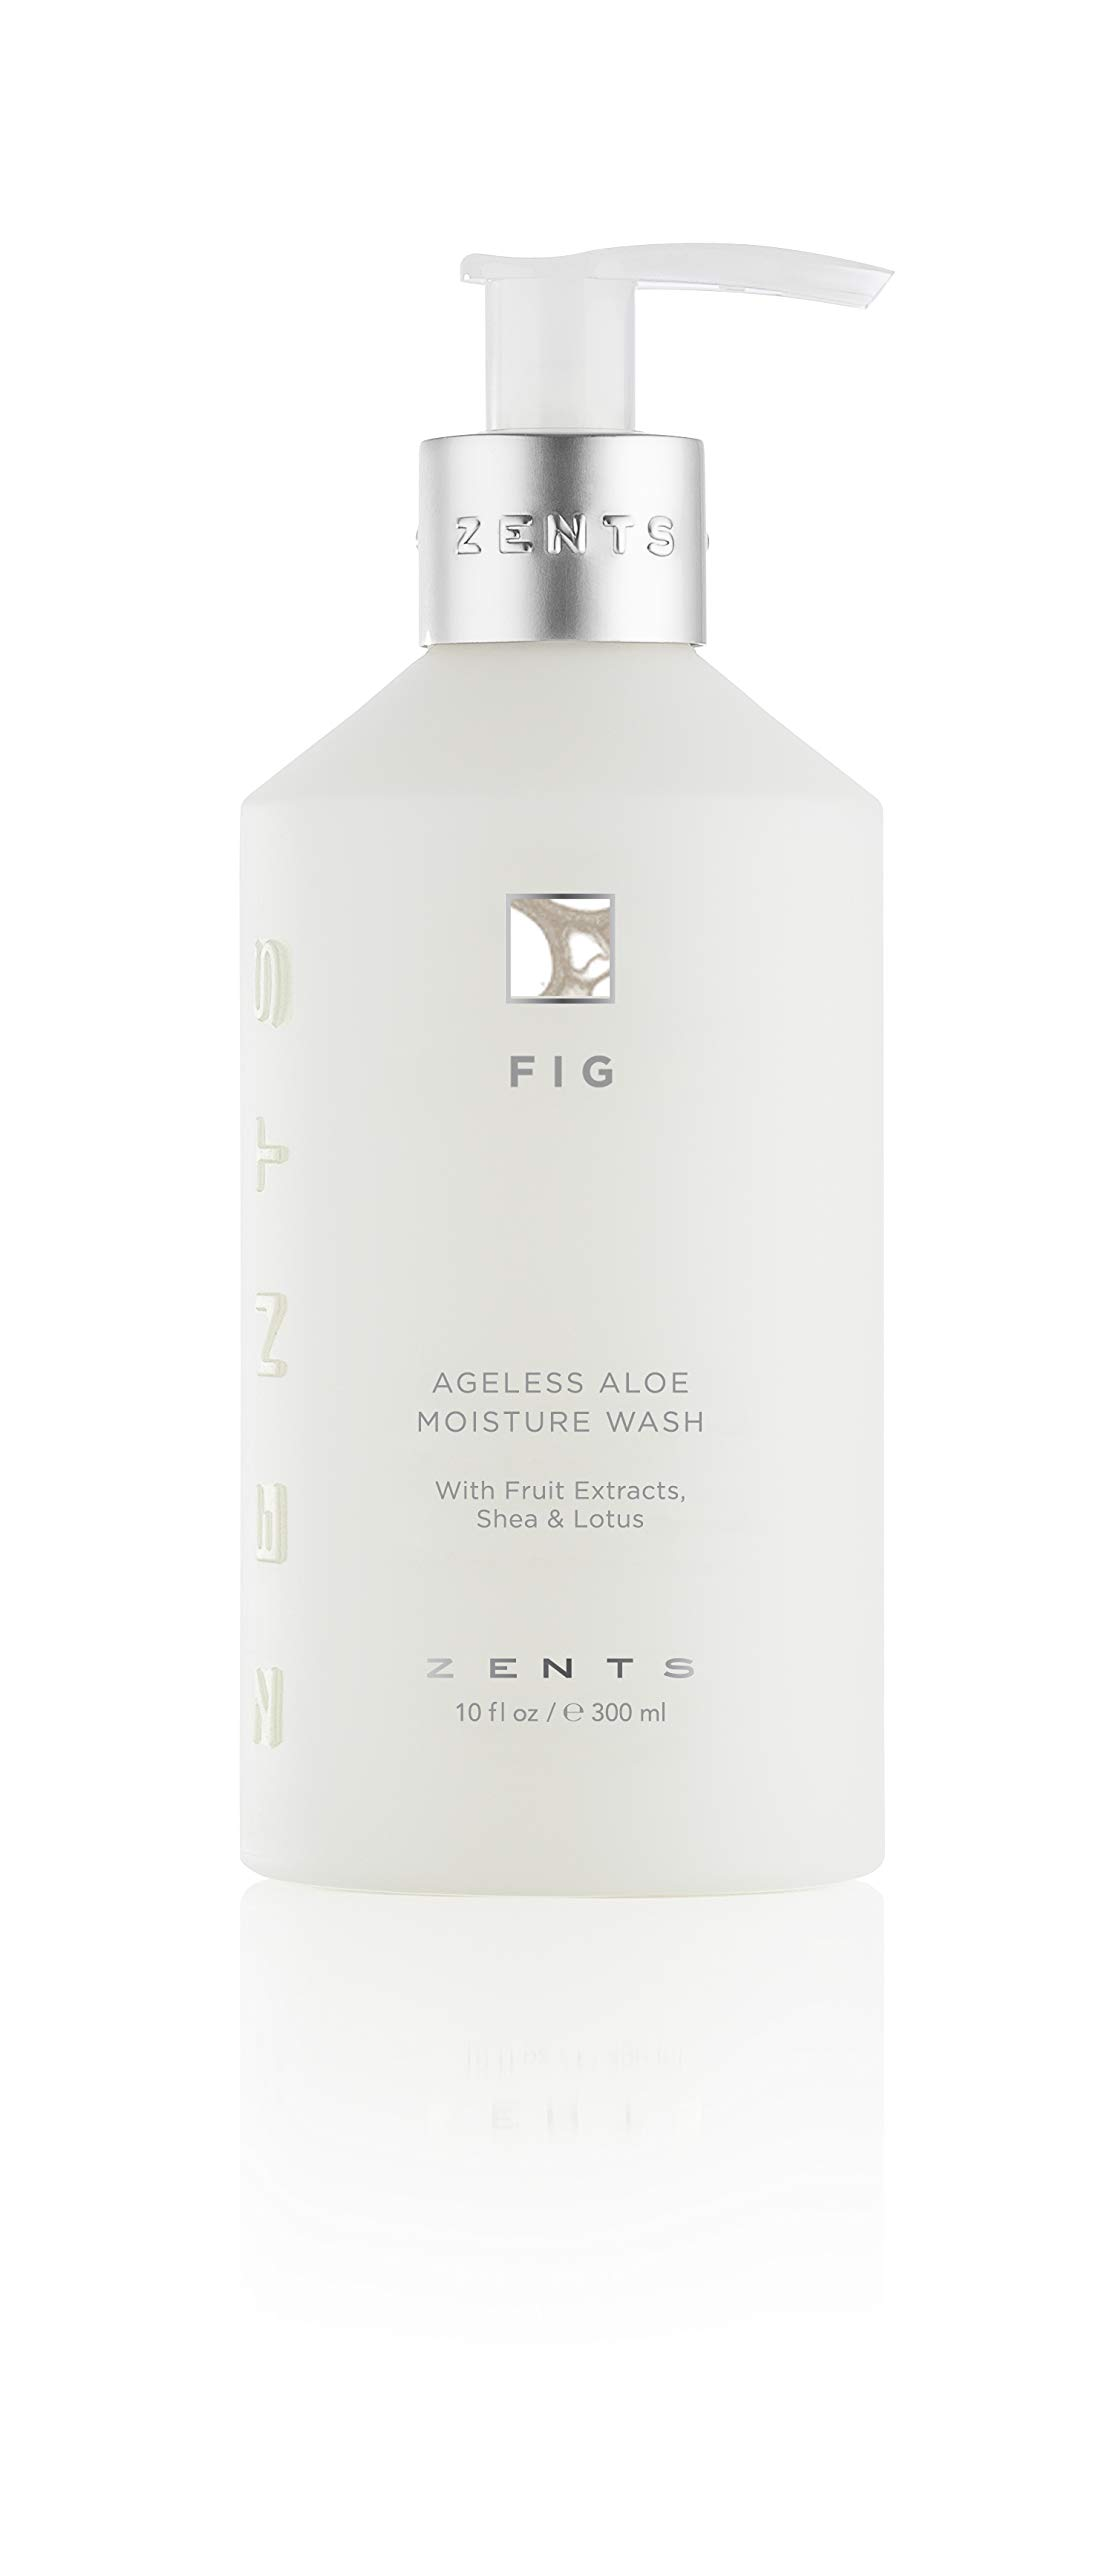 Zents Ageless Aloe Moisture Body and Hand Wash, Cleanse and Nourish Dry Skin with Shea Butter and Organic Aloe 10 fl oz / 300 ml (Fig)